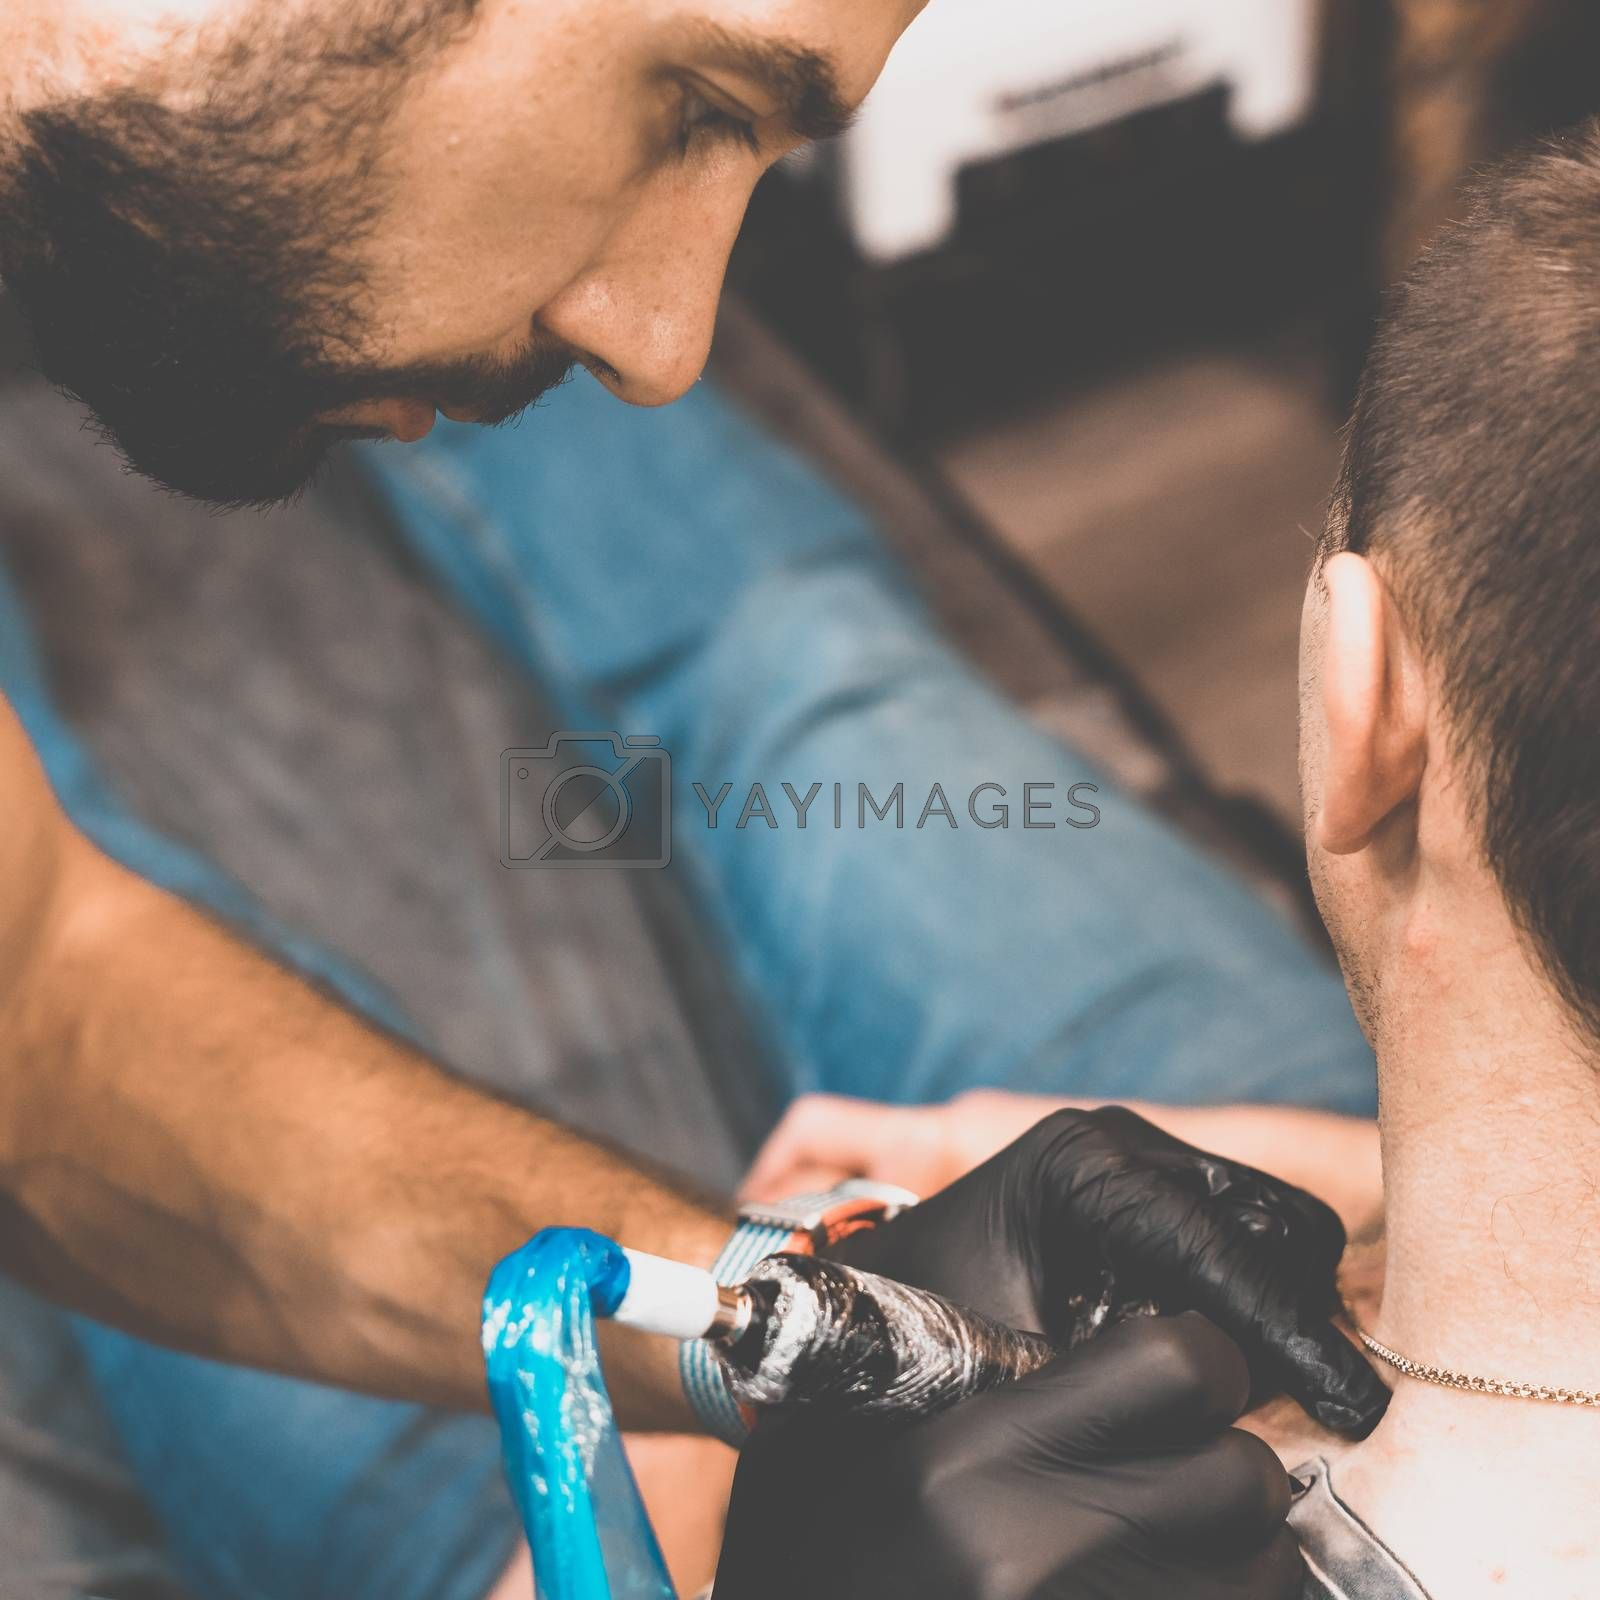 Tattoo salon. The tattoo master is tattooing a man on his shoulder. Tattoo machine, safety and hygiene at work. Close-up, tinted, tattooist.